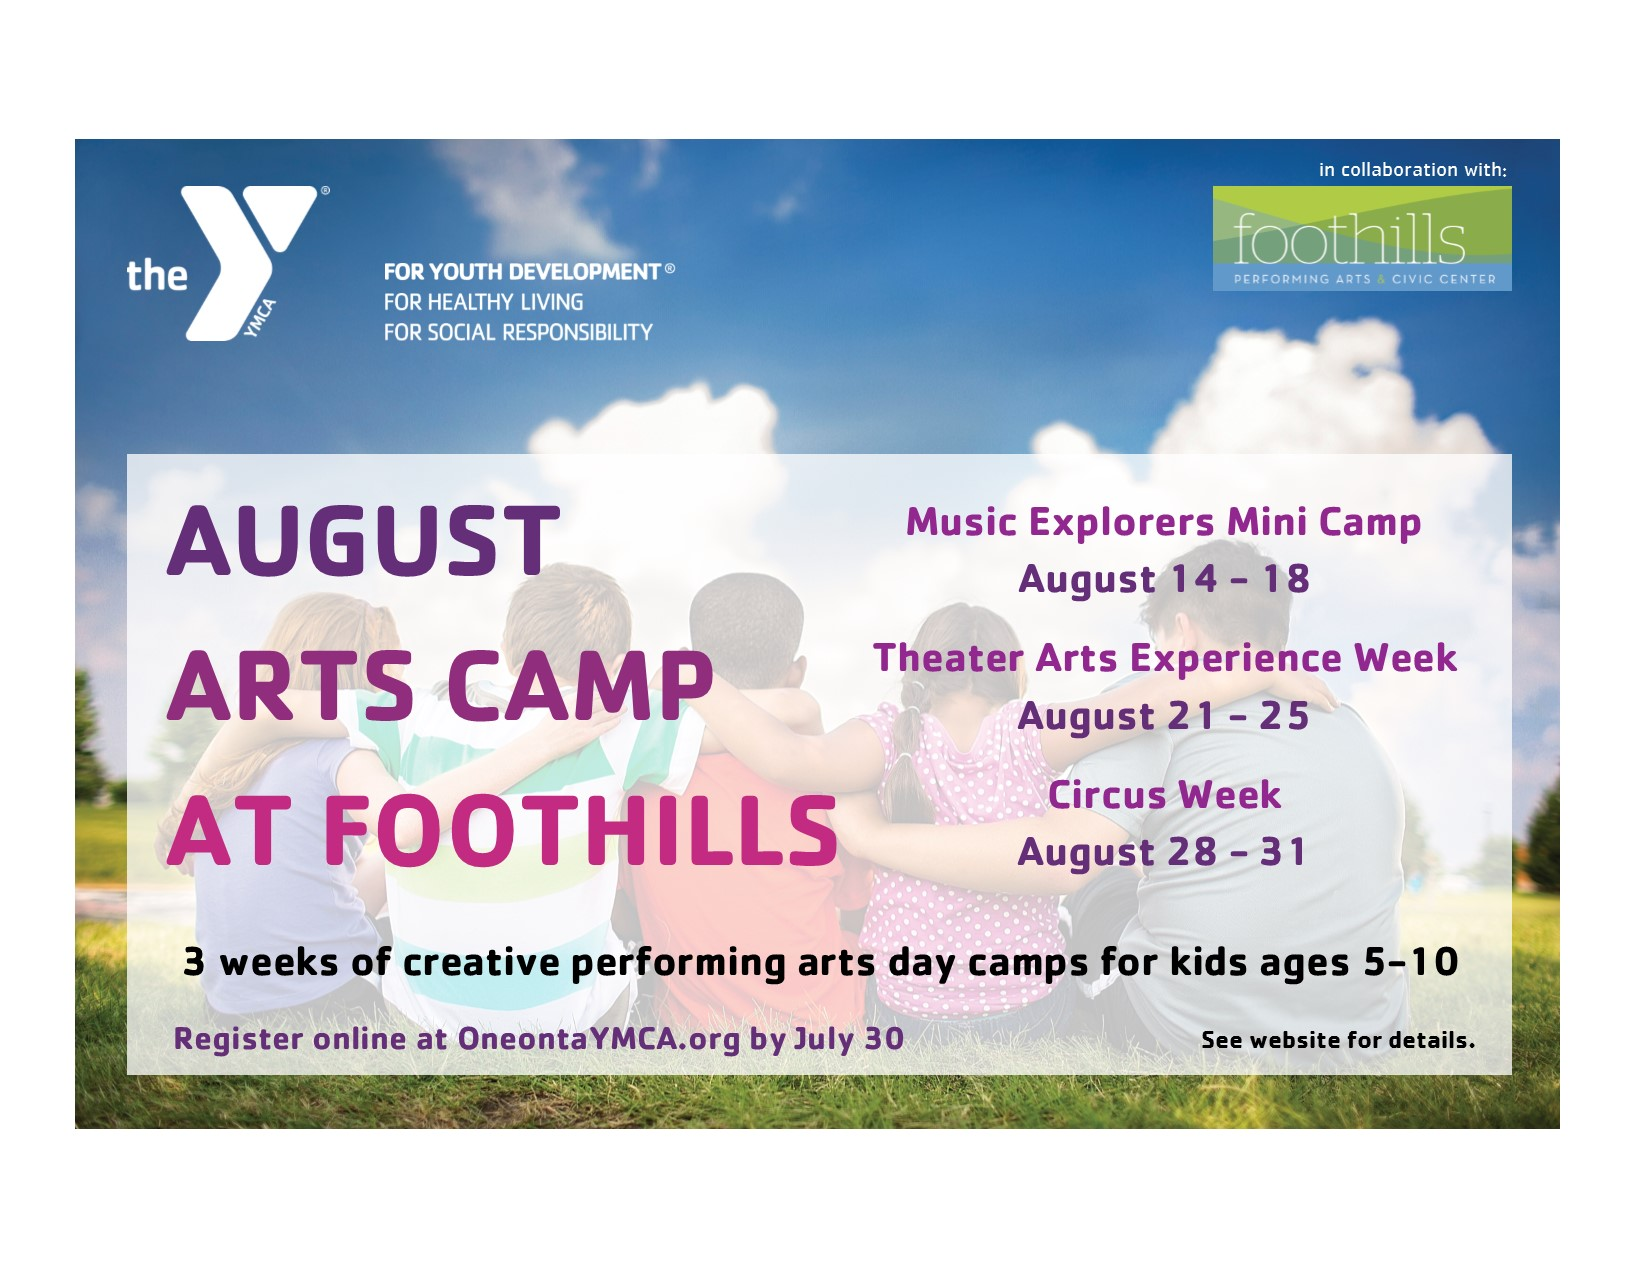 AUGUST ARTS CAMP AT FOOTHILLS